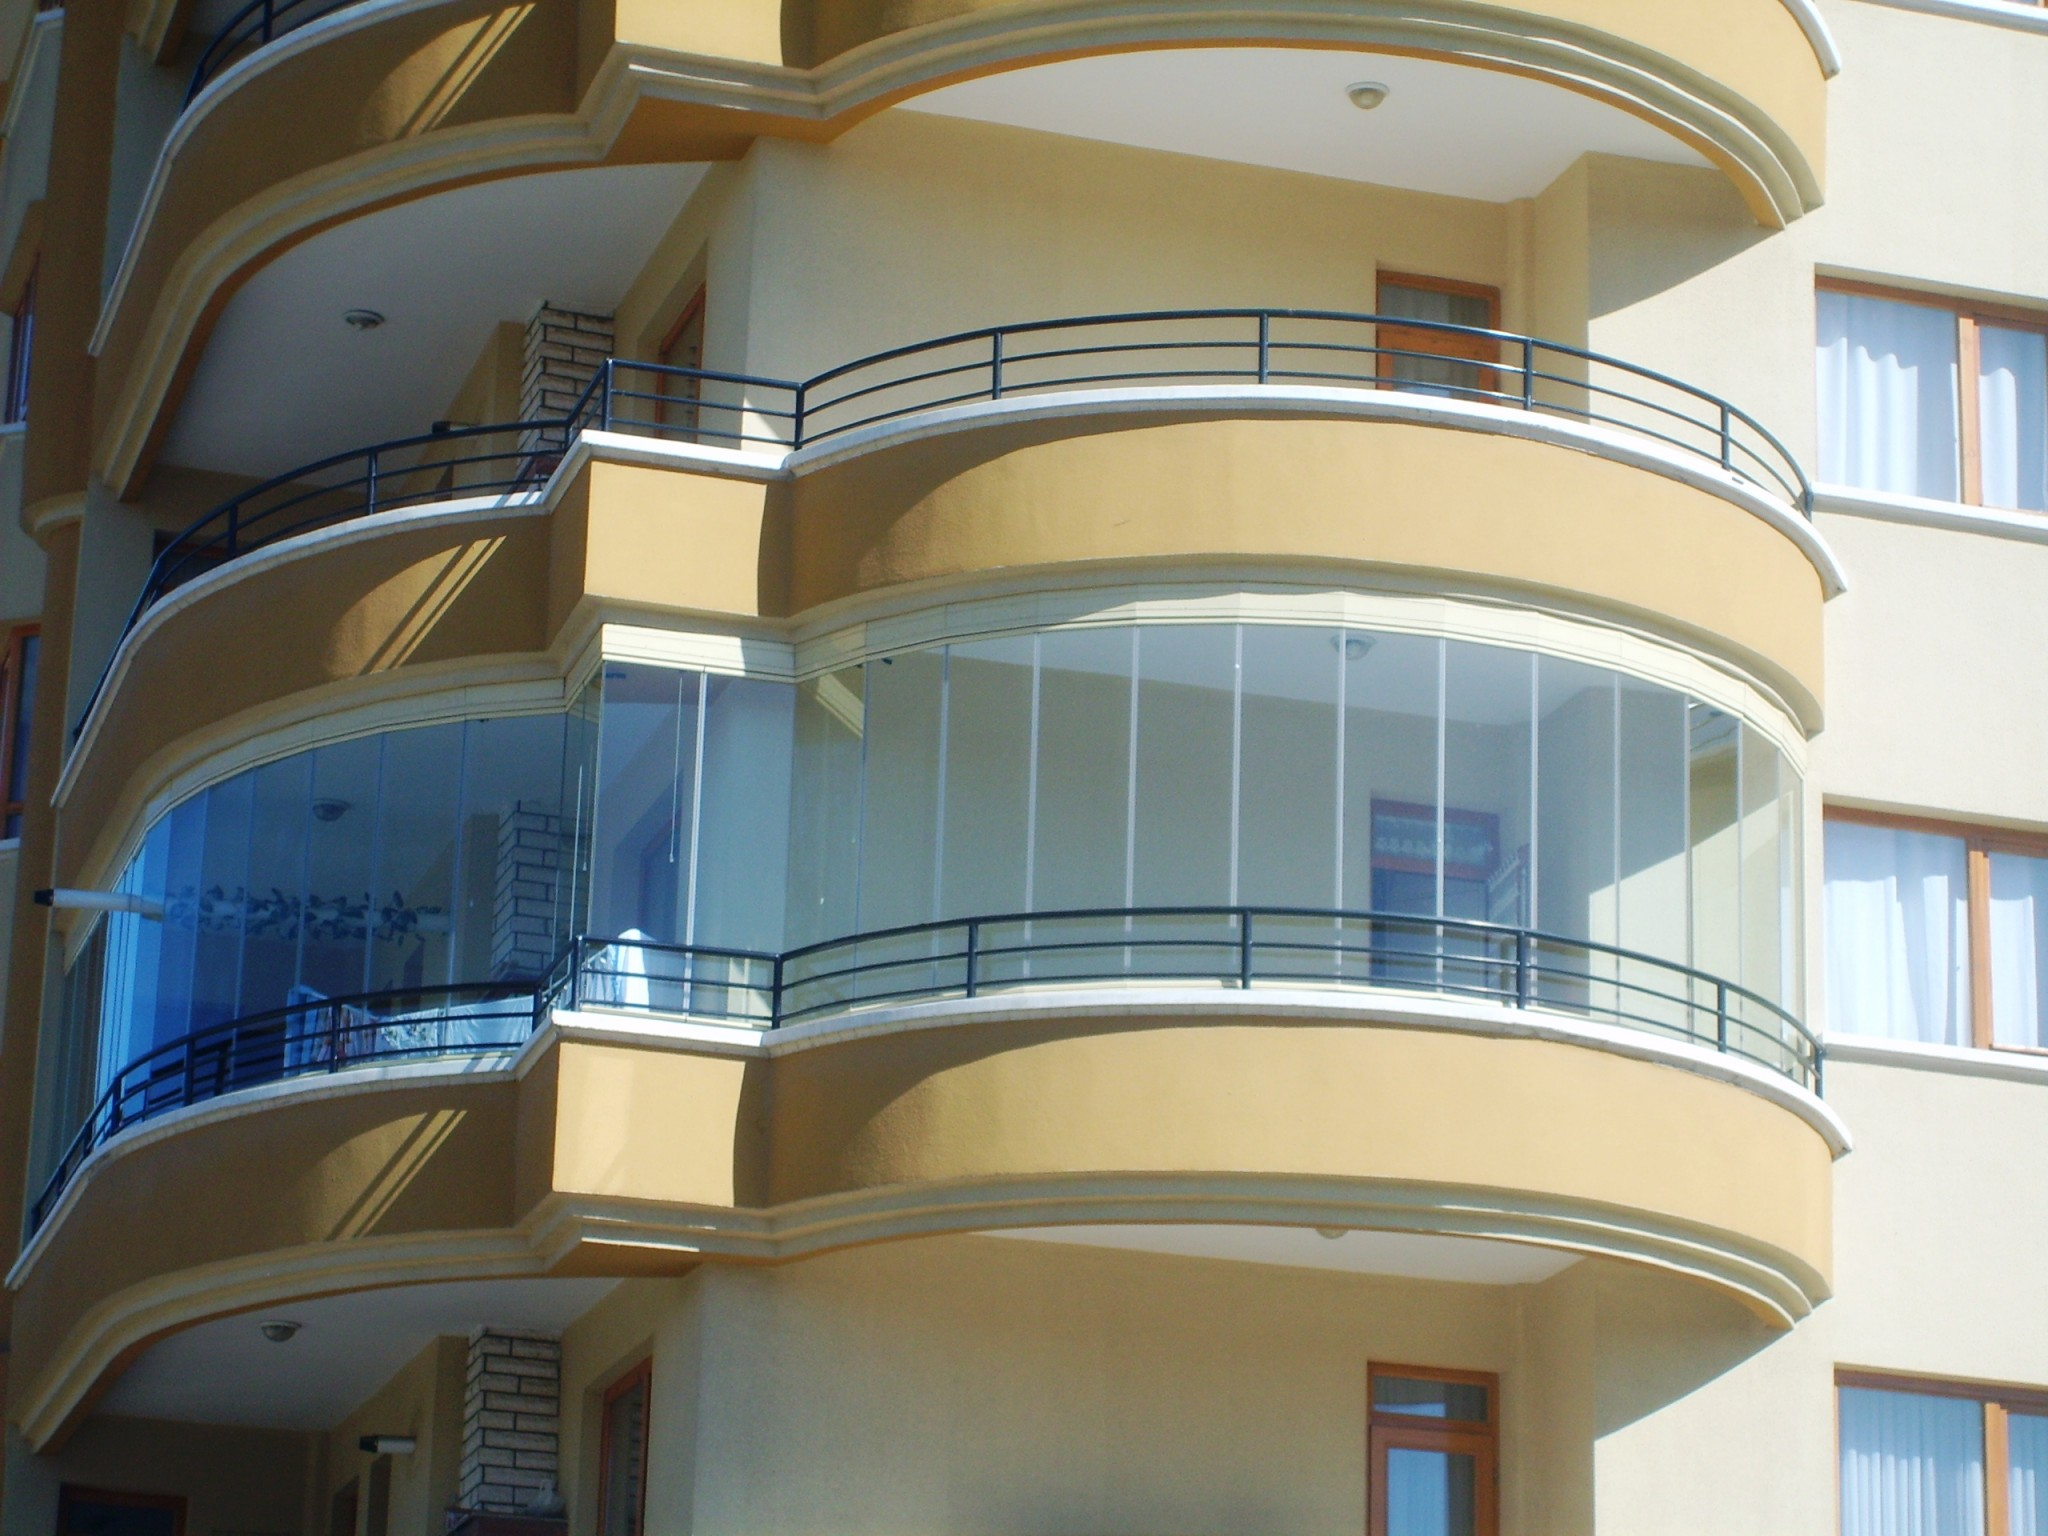 Modern Glazing for Balcony or Loggia. Spectacular solution for rounded balcony of the modern block of flats